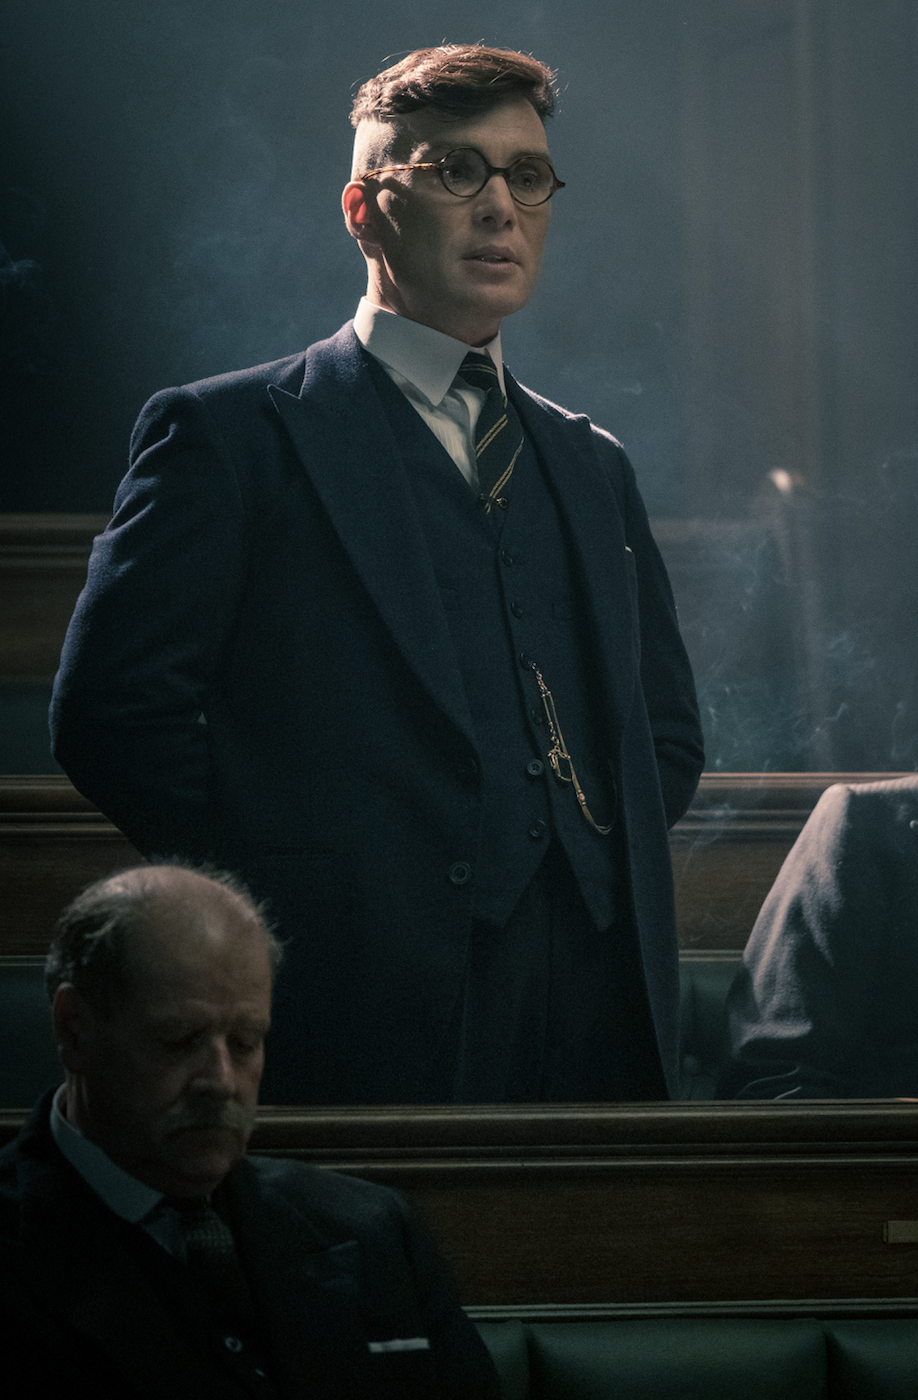 Peaky Blinders Season 5 Finale Brings Back Key Character